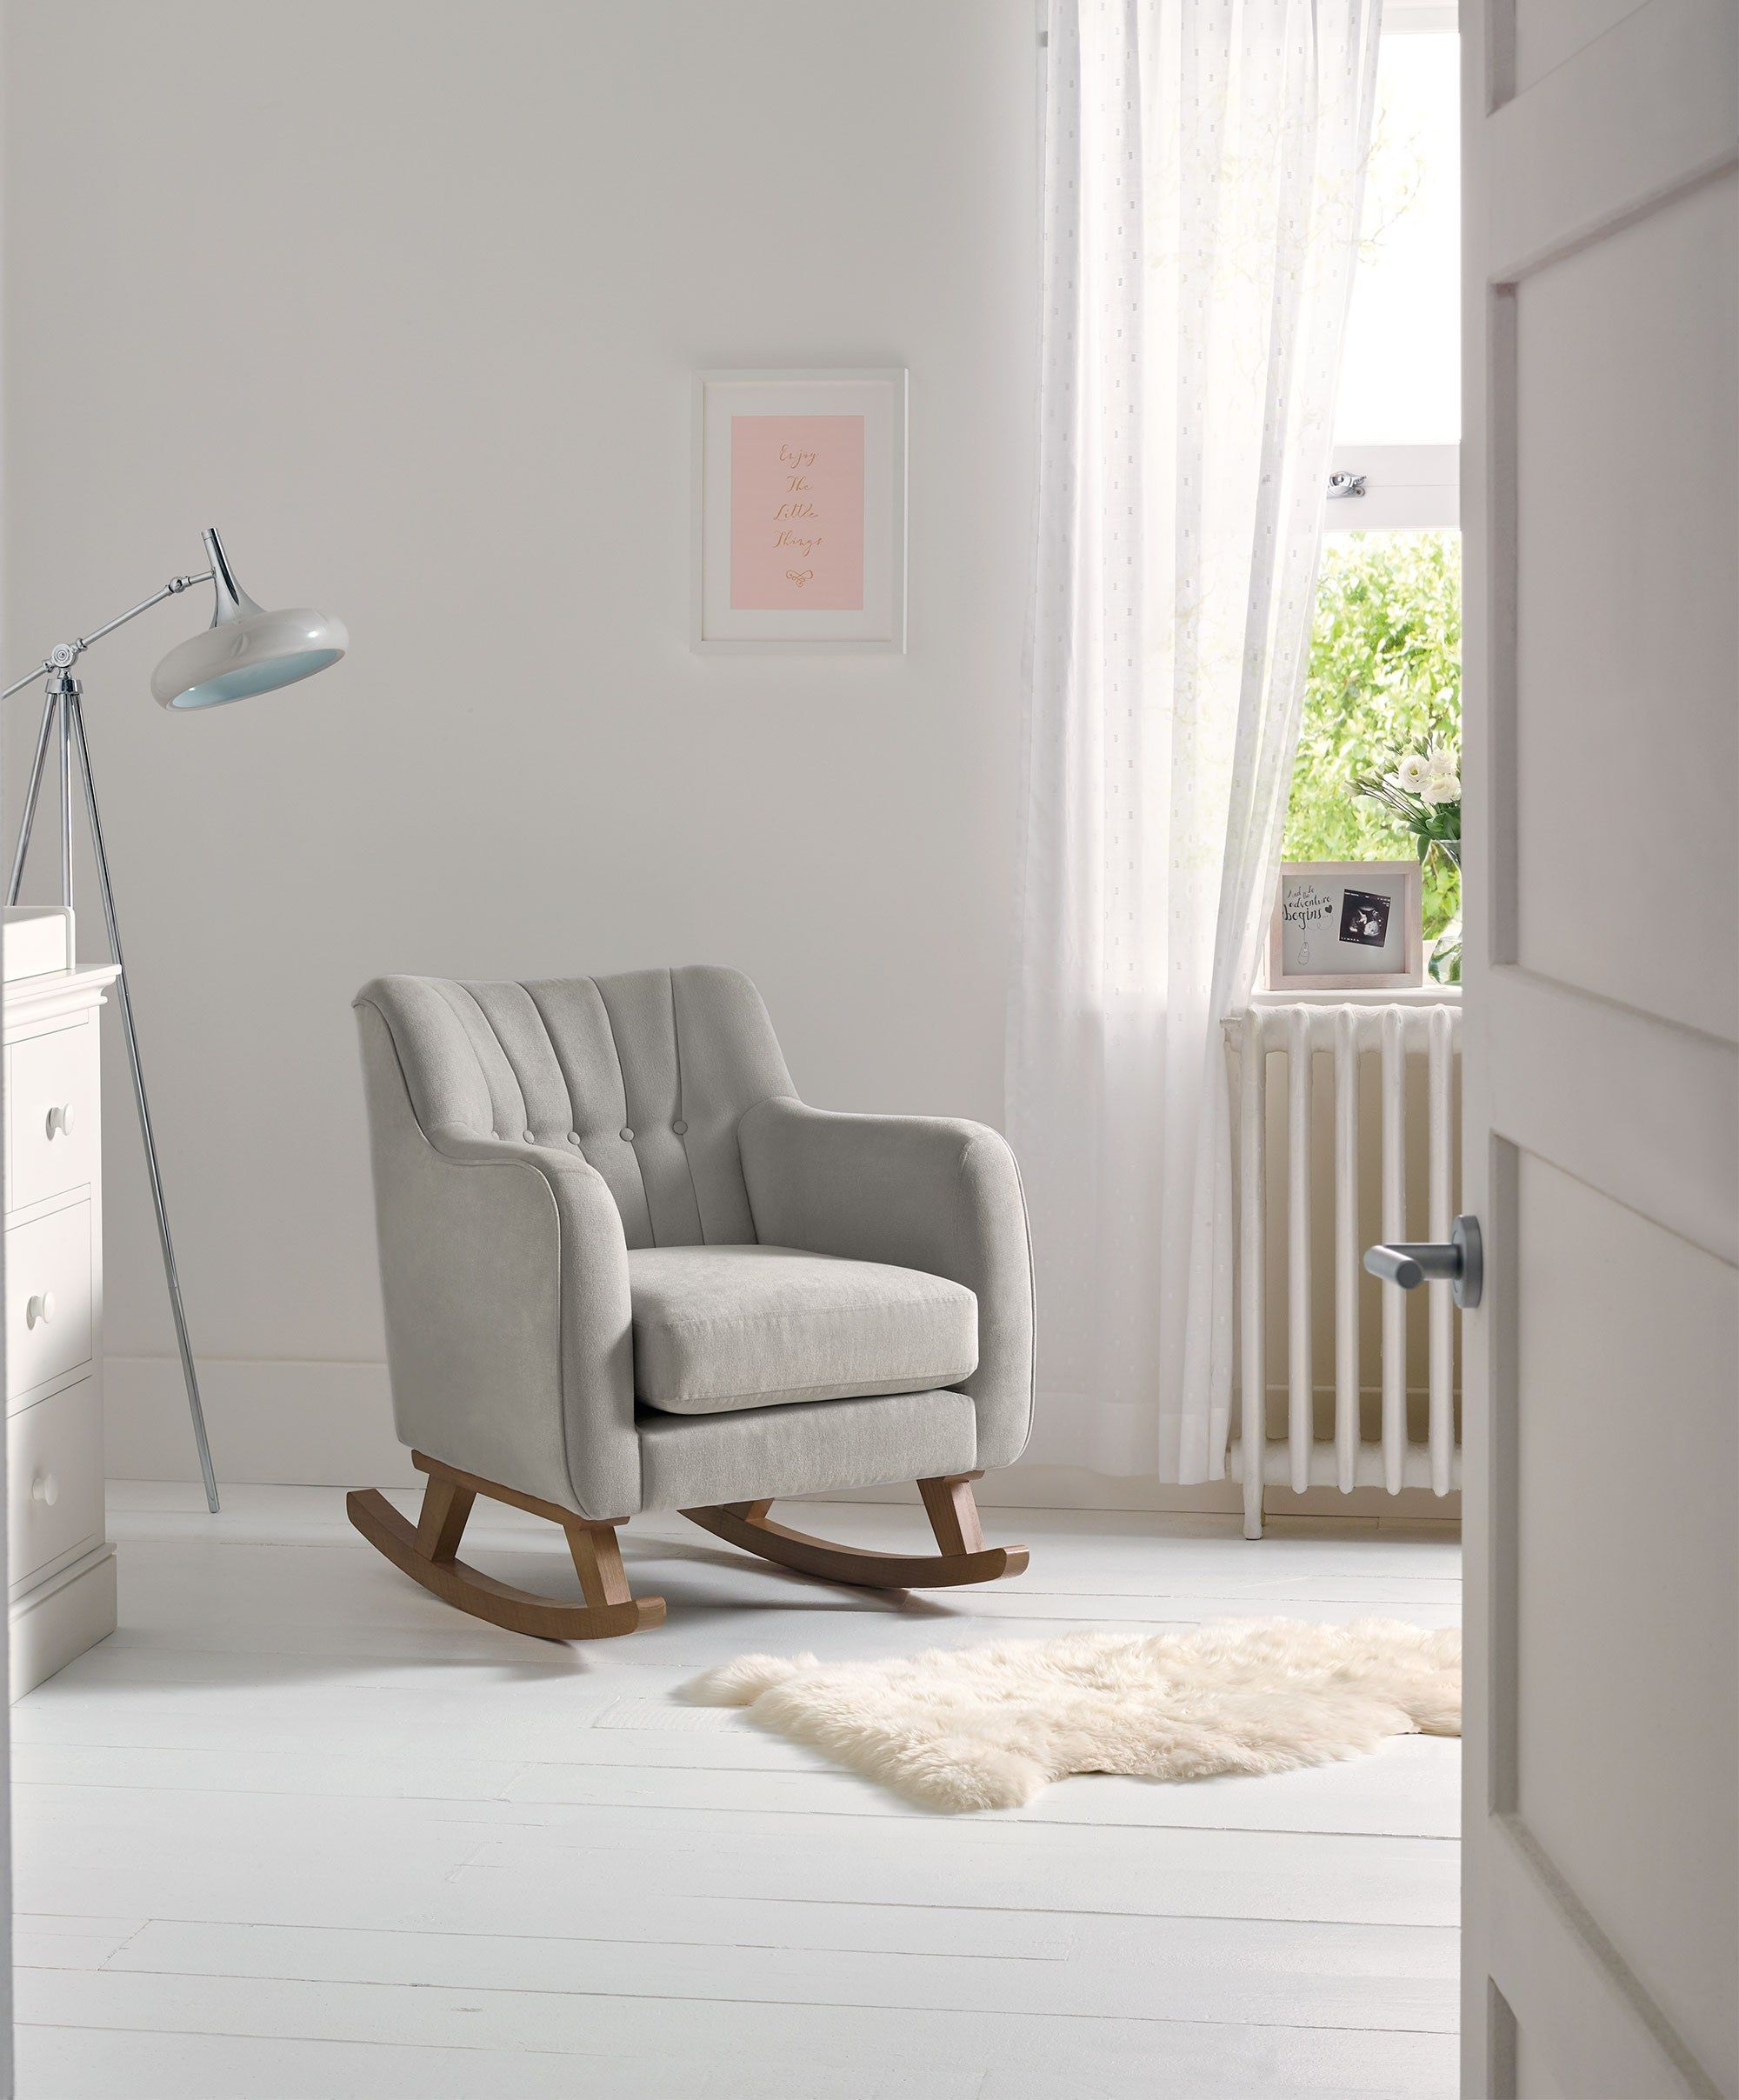 Baby Nursing Chair Hilston Nursing Chair Silver Baby Room Nursing Chair Baby